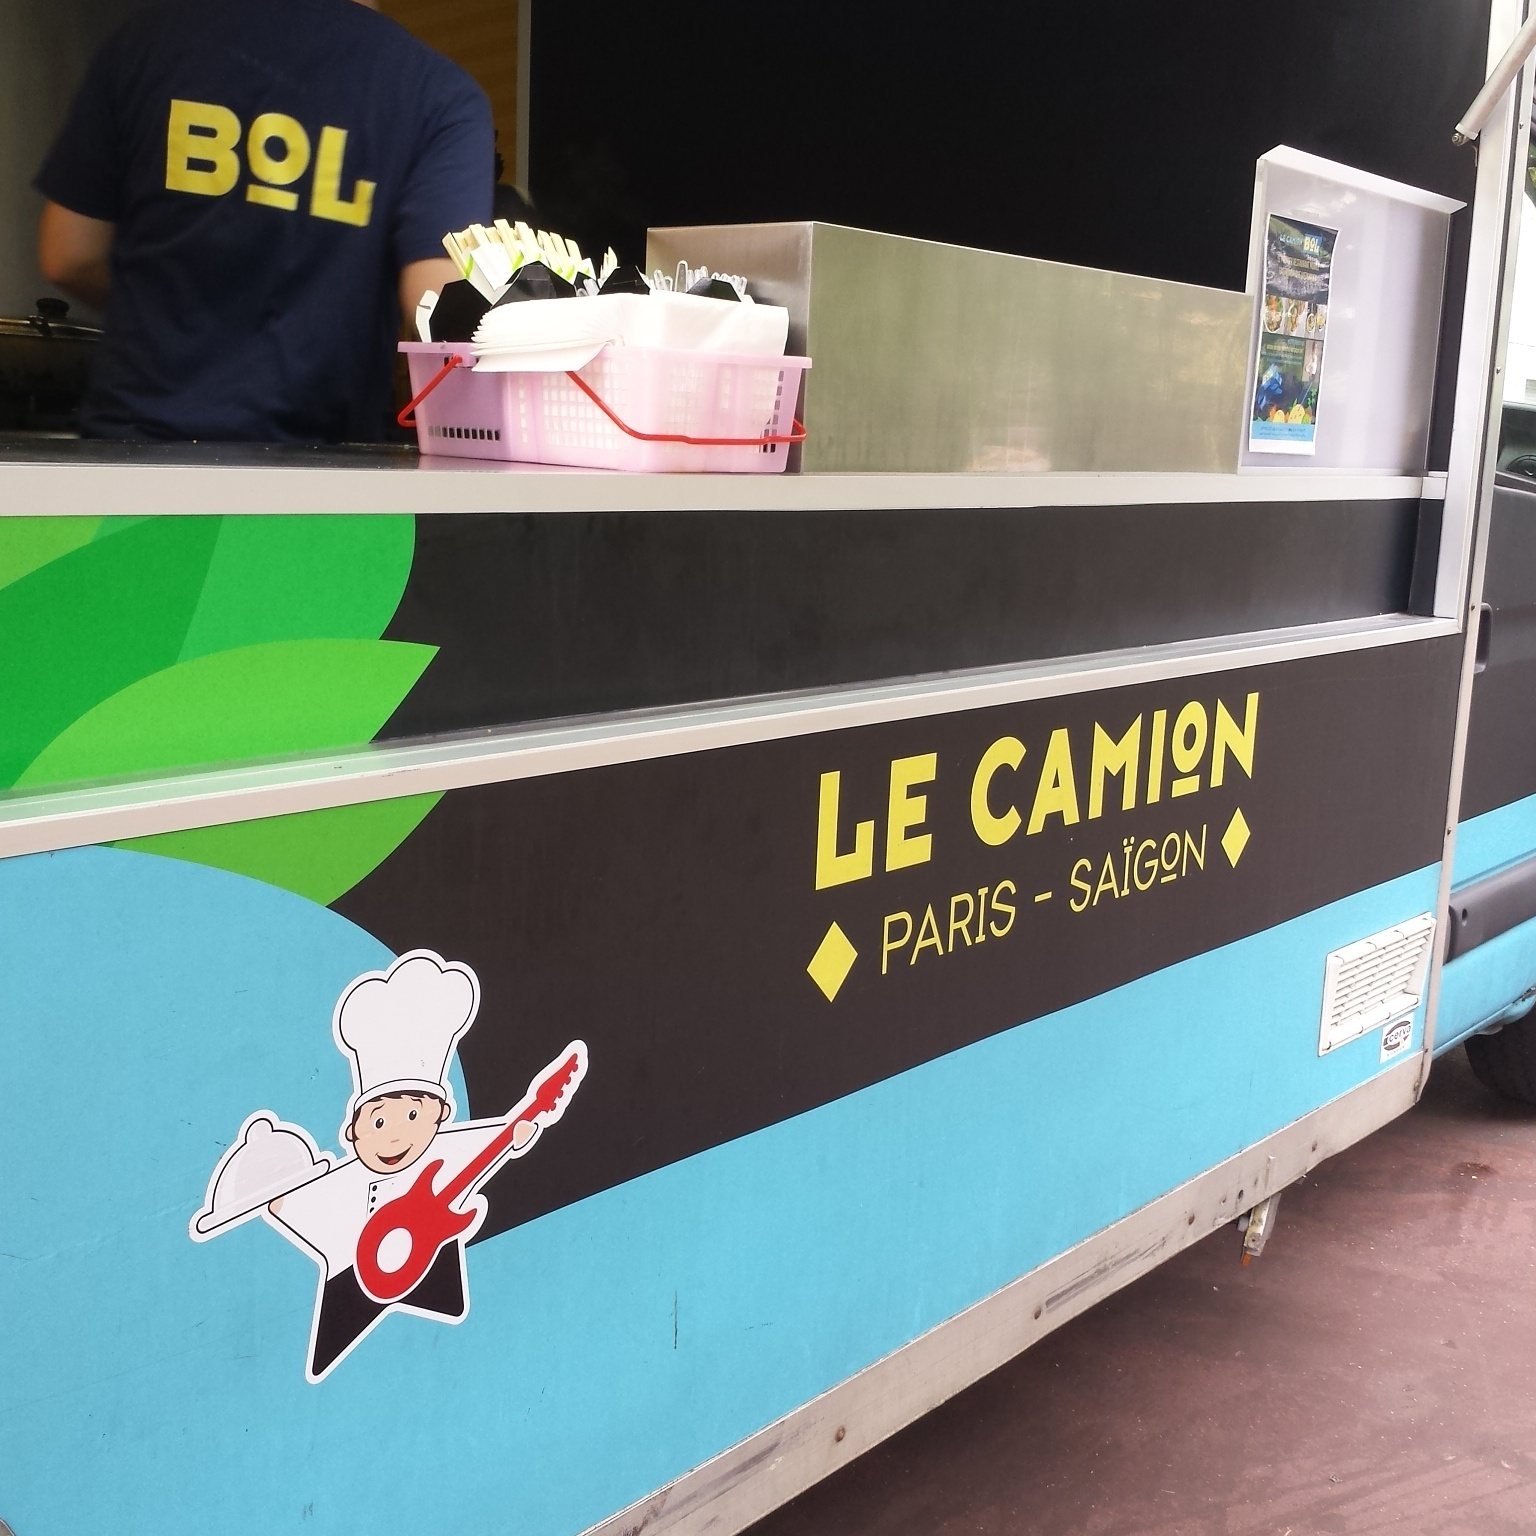 Food truck - Le Camion Bol